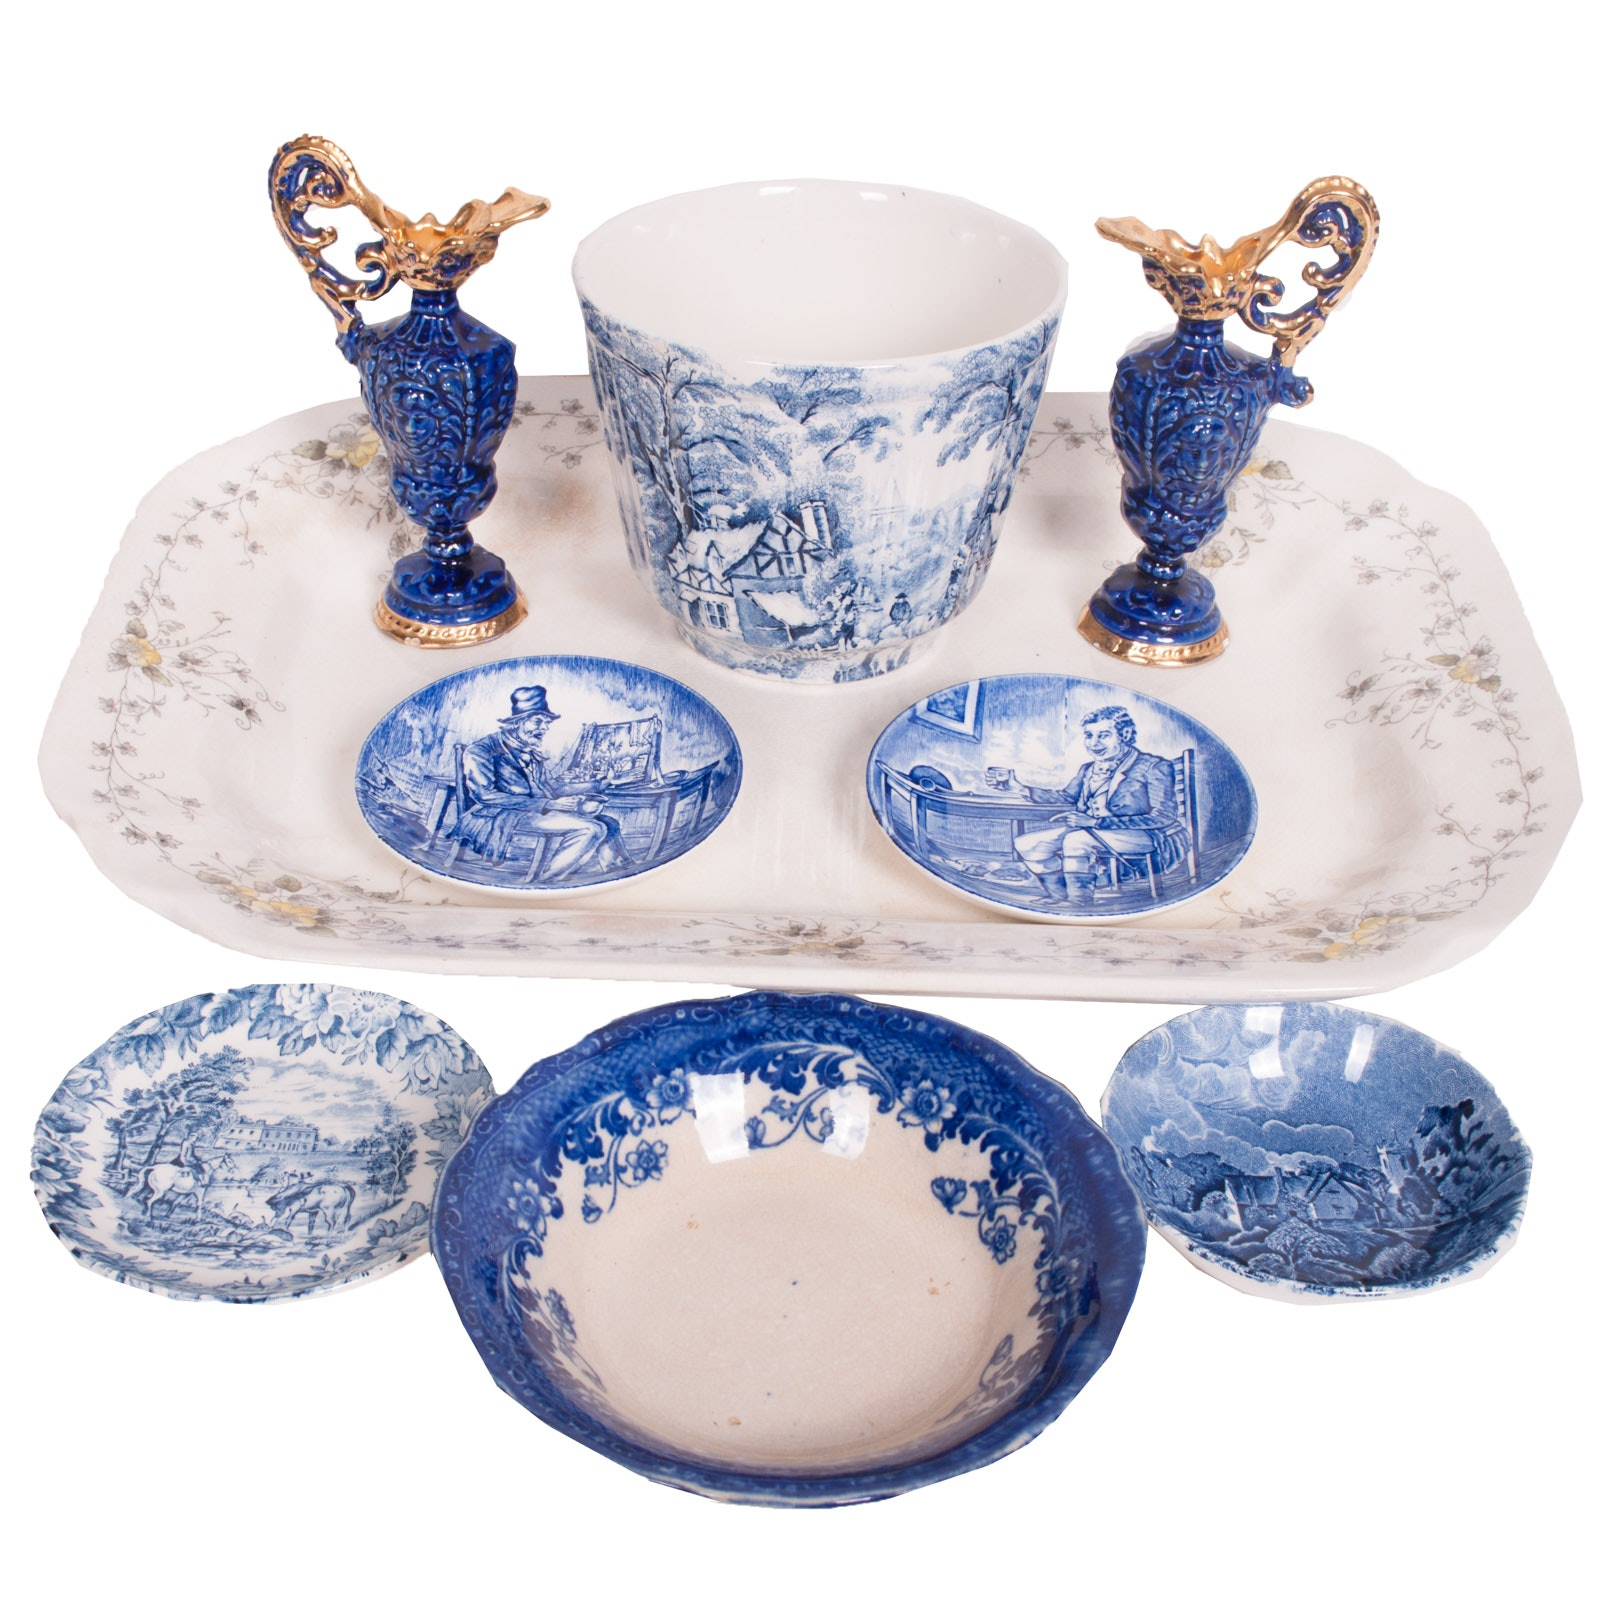 English Porcelain and Ironstone Assortment